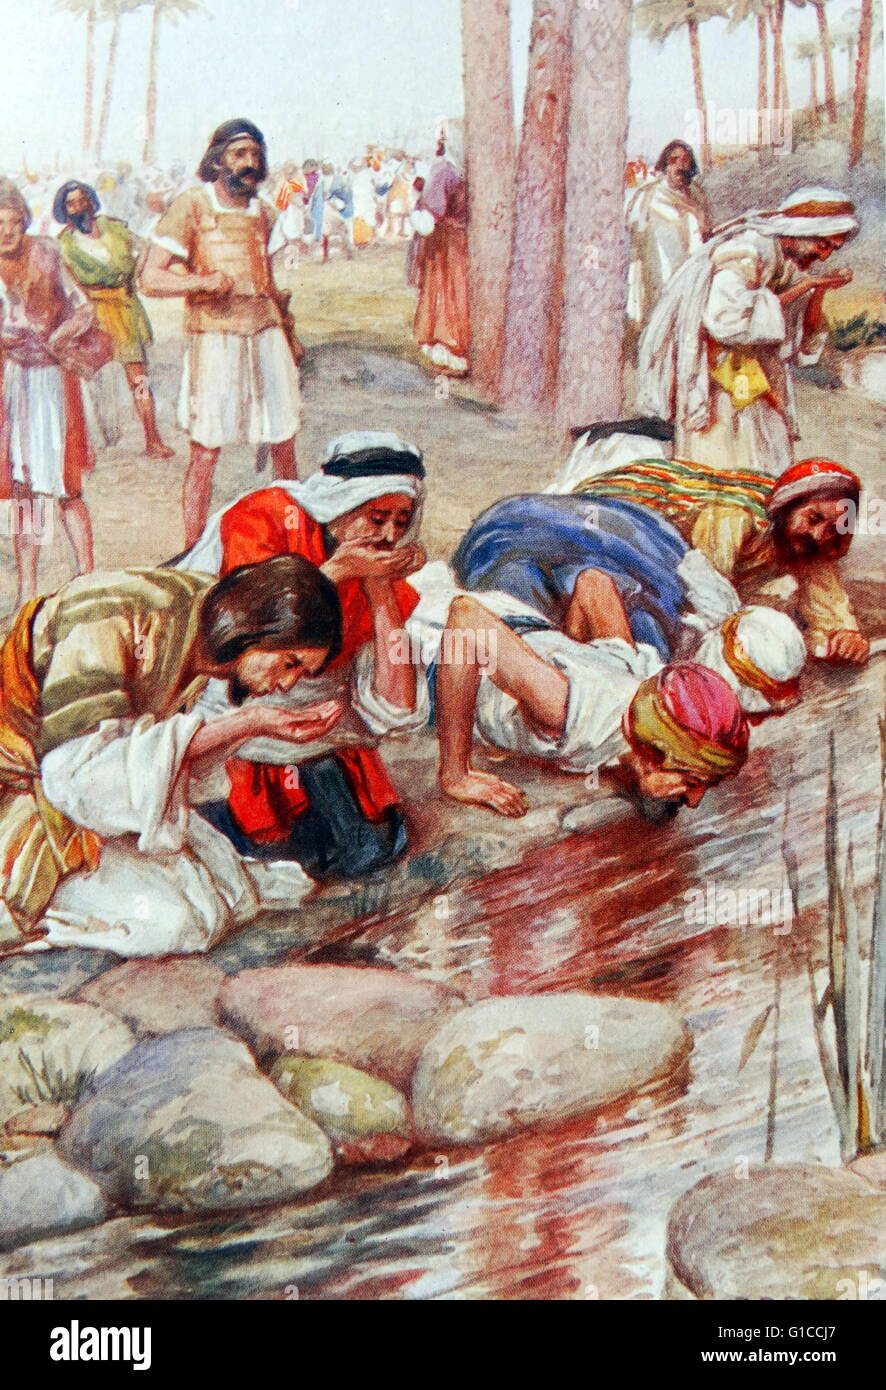 Gideon the Hebrew leader allows his soldiers to drink before battle. illustration by Arthur A. Dixon 1872-1959. - Stock Image